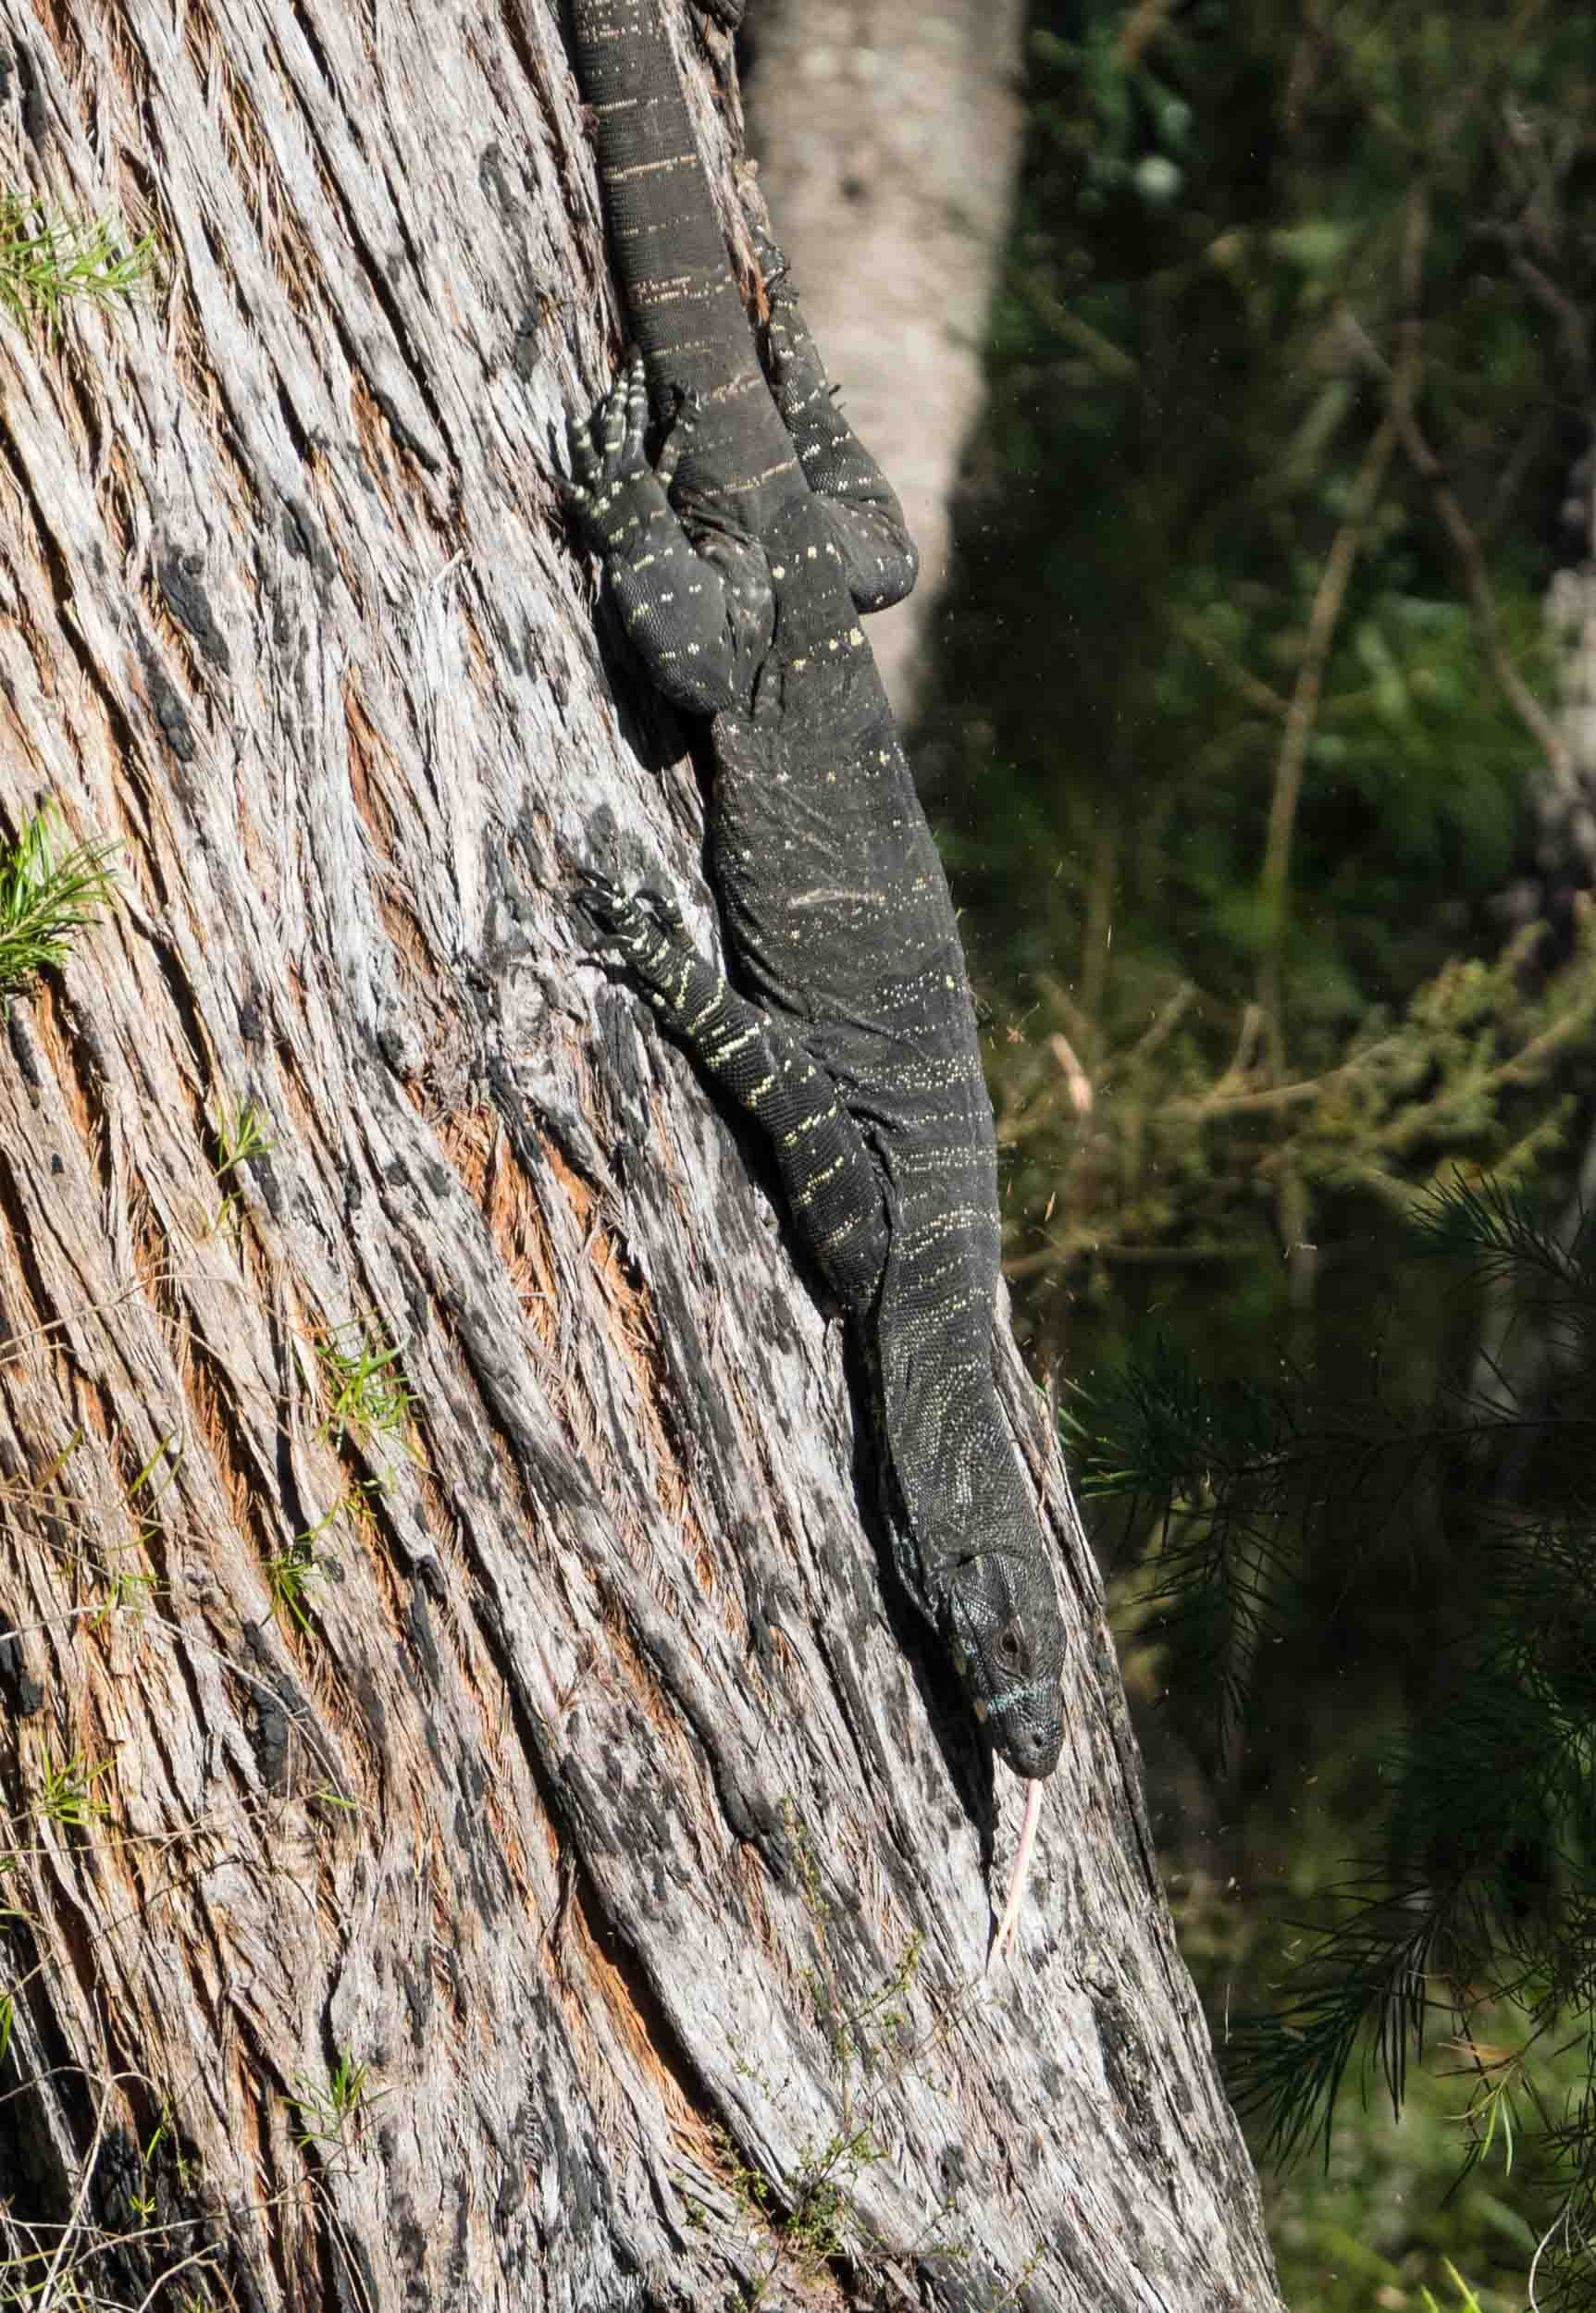 Retreating goanna